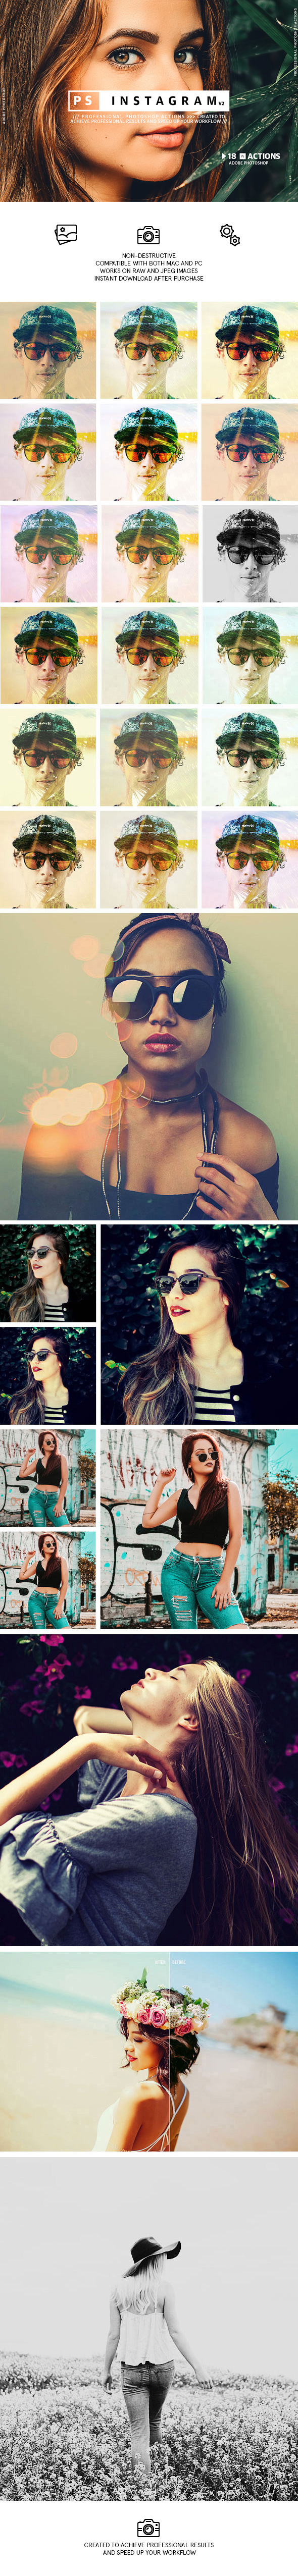 Instagram V2 Presets - Photo Effects Actions